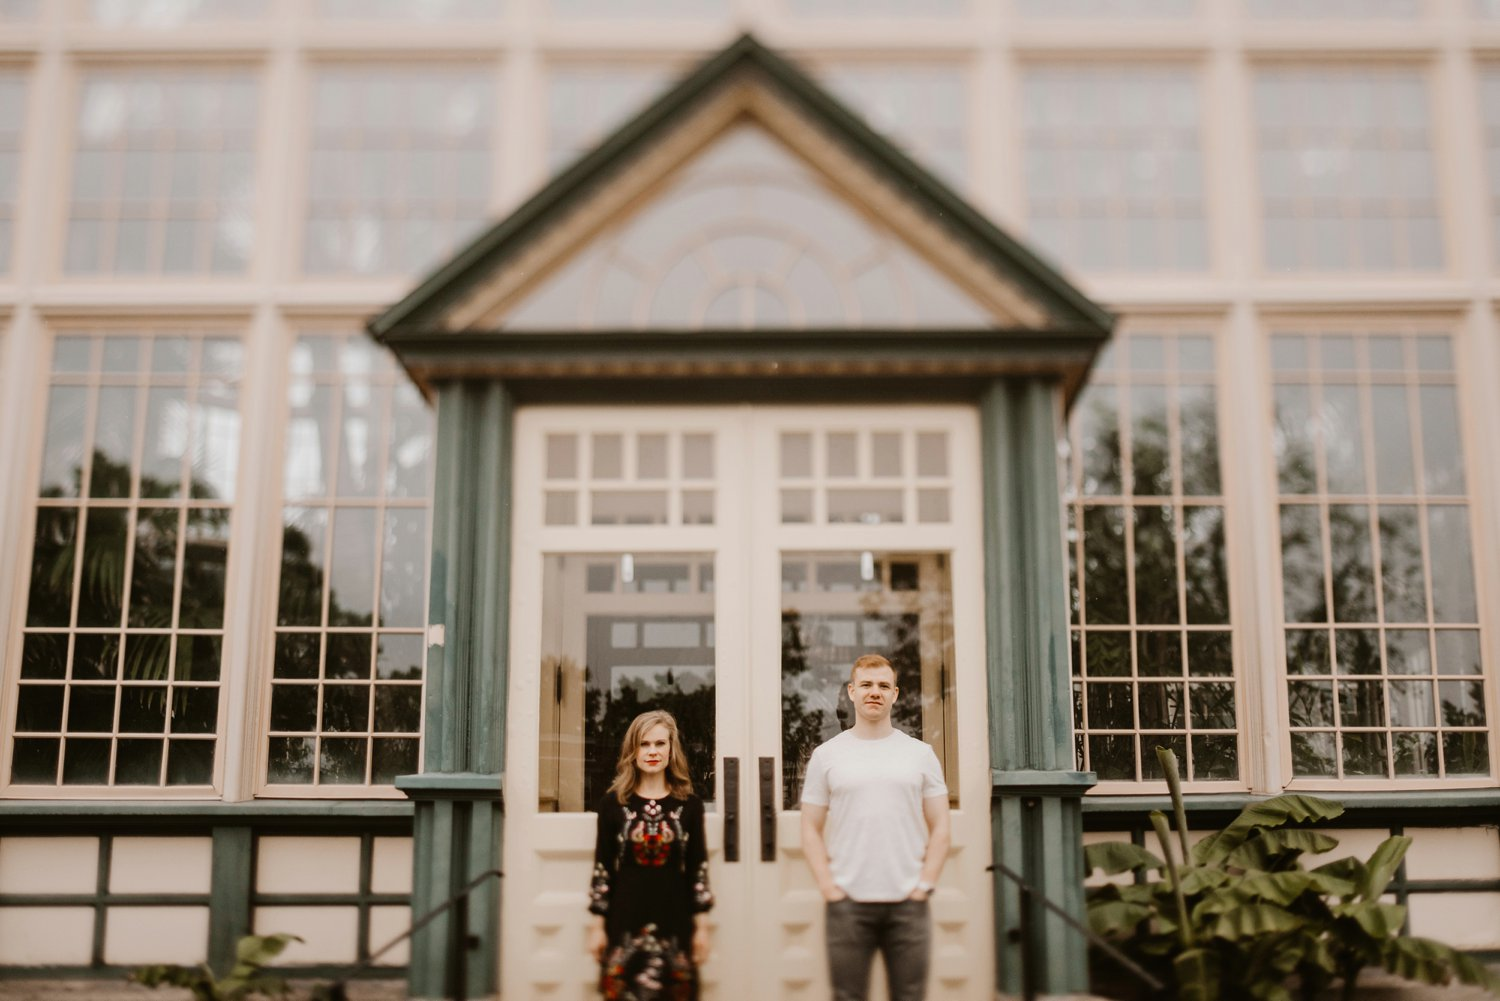 Rawlings Conservatory Baltimore greenhouse engagement session Baltimore engagement photographer